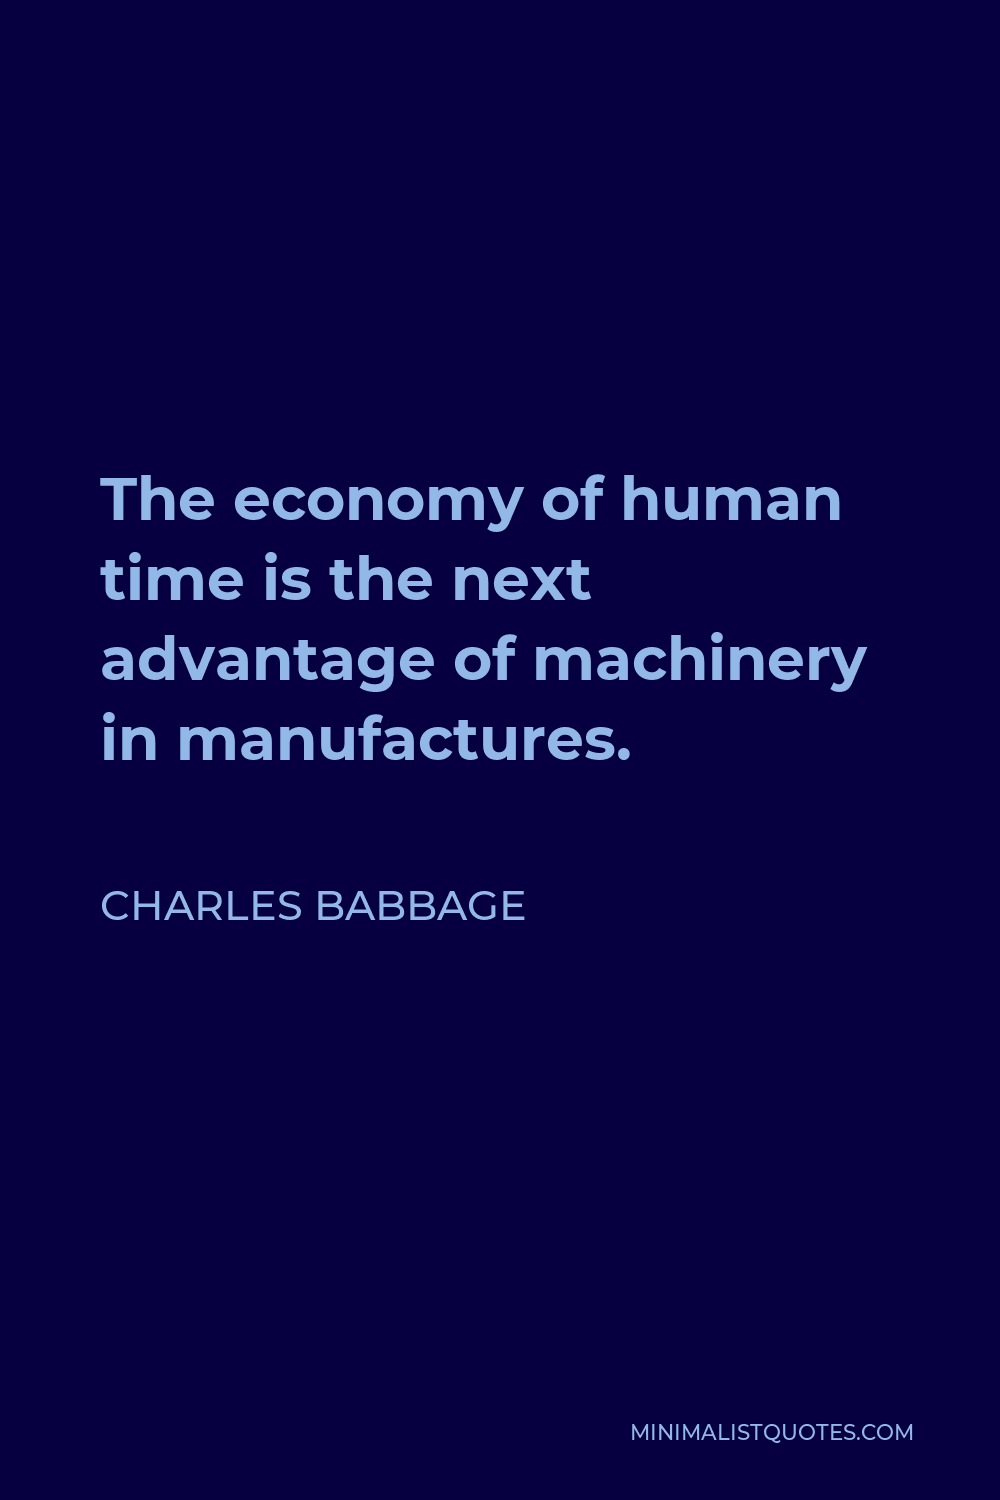 Charles Babbage Quote - The economy of human time is the next advantage of machinery in manufactures.